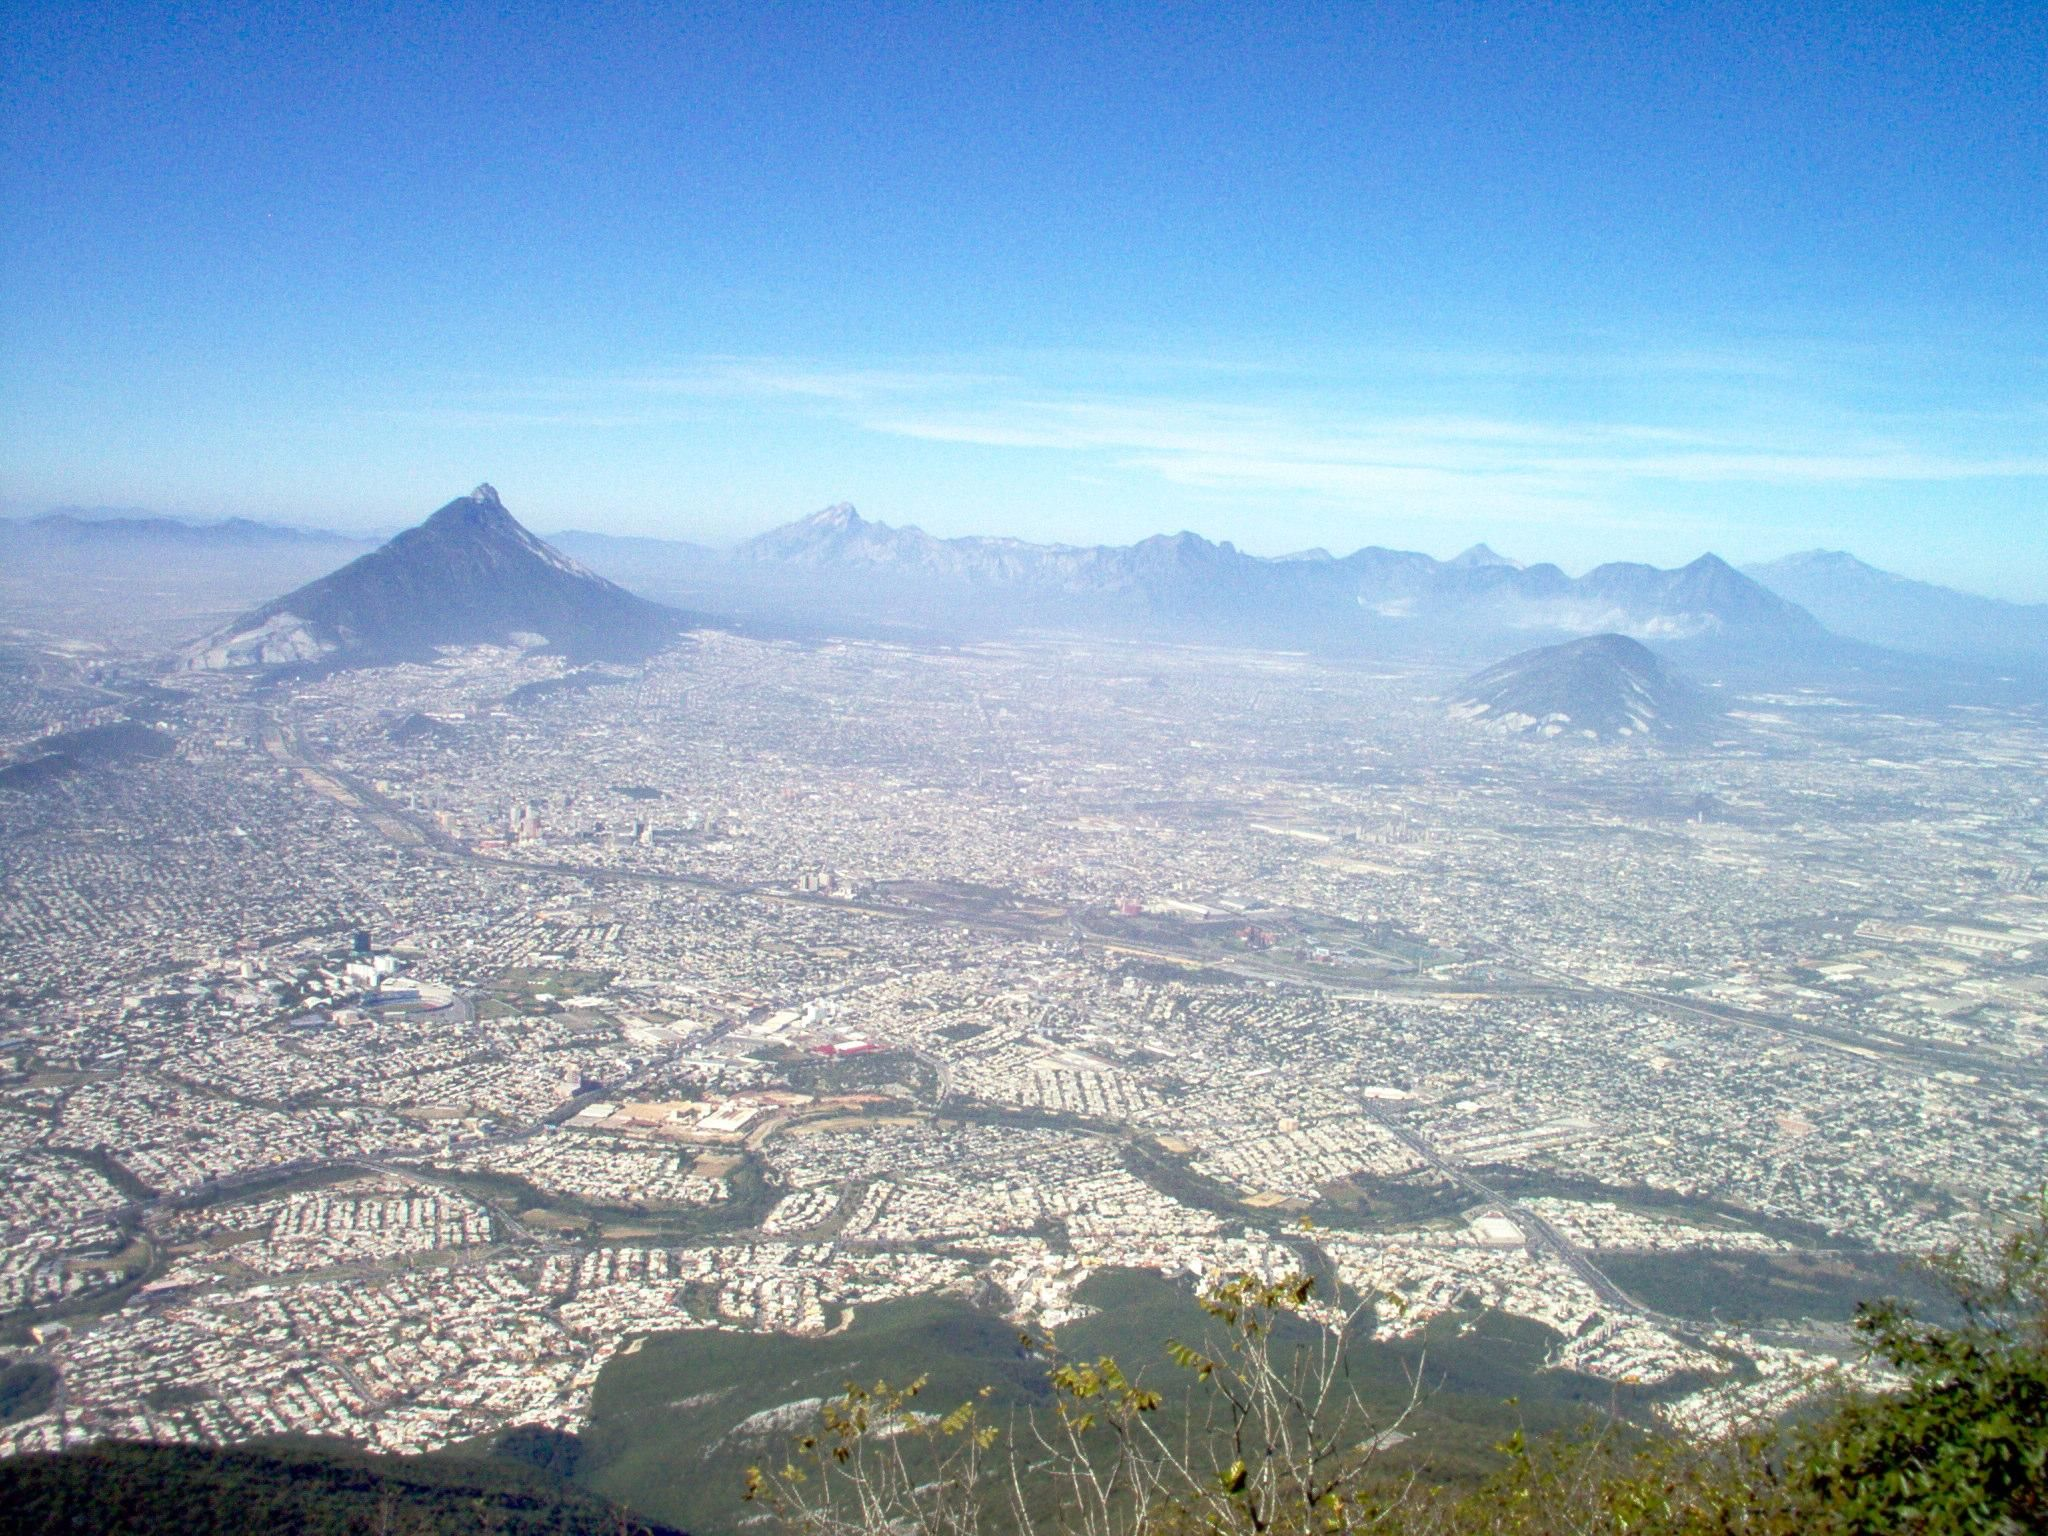 Monterrey Mexico  City pictures : Urban area | MONTERREY, N. L. MEXICO | Pinterest